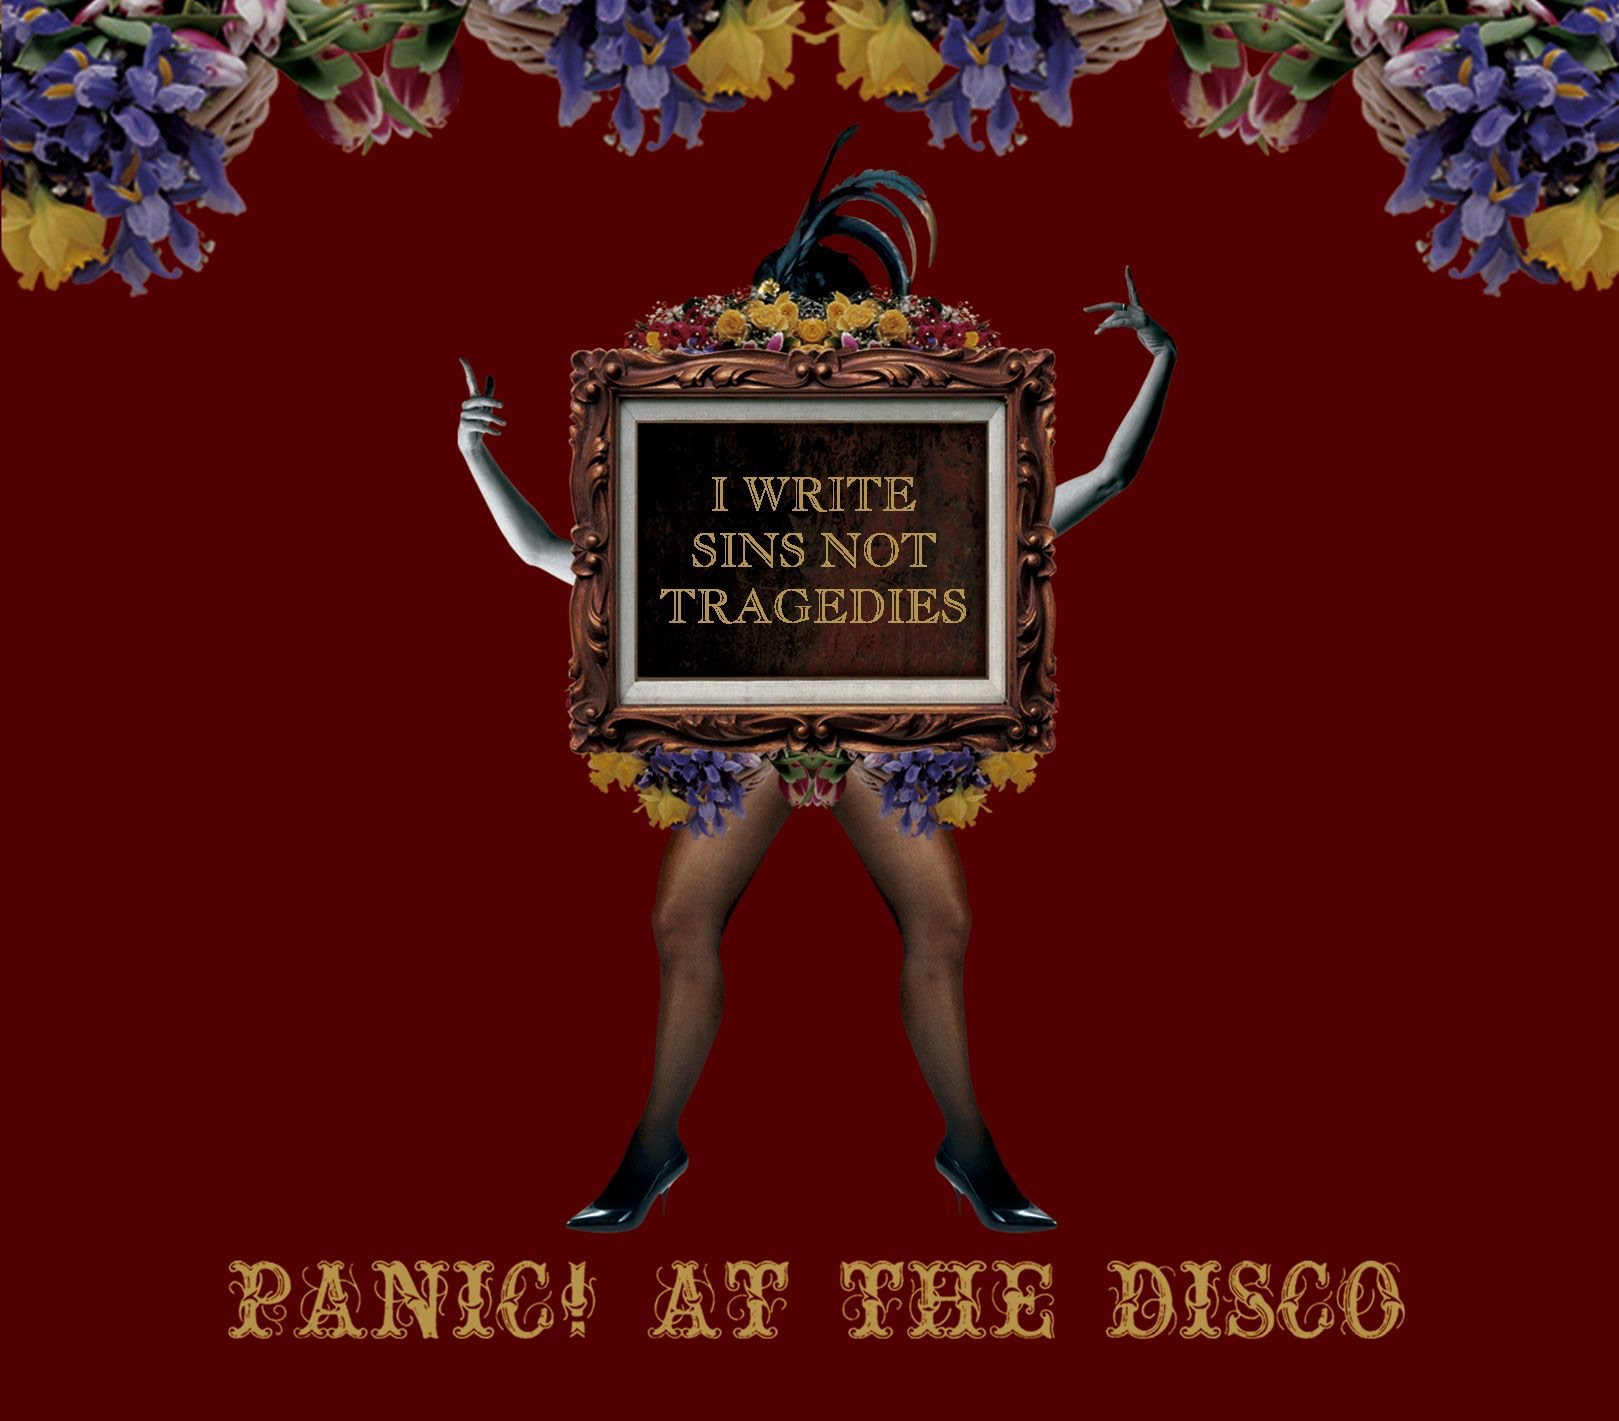 i write sins not tragedies download Download the karaoke of i write sins not tragedies as made famous by panic at the disco in the genre rock, alternative on karaoke version.